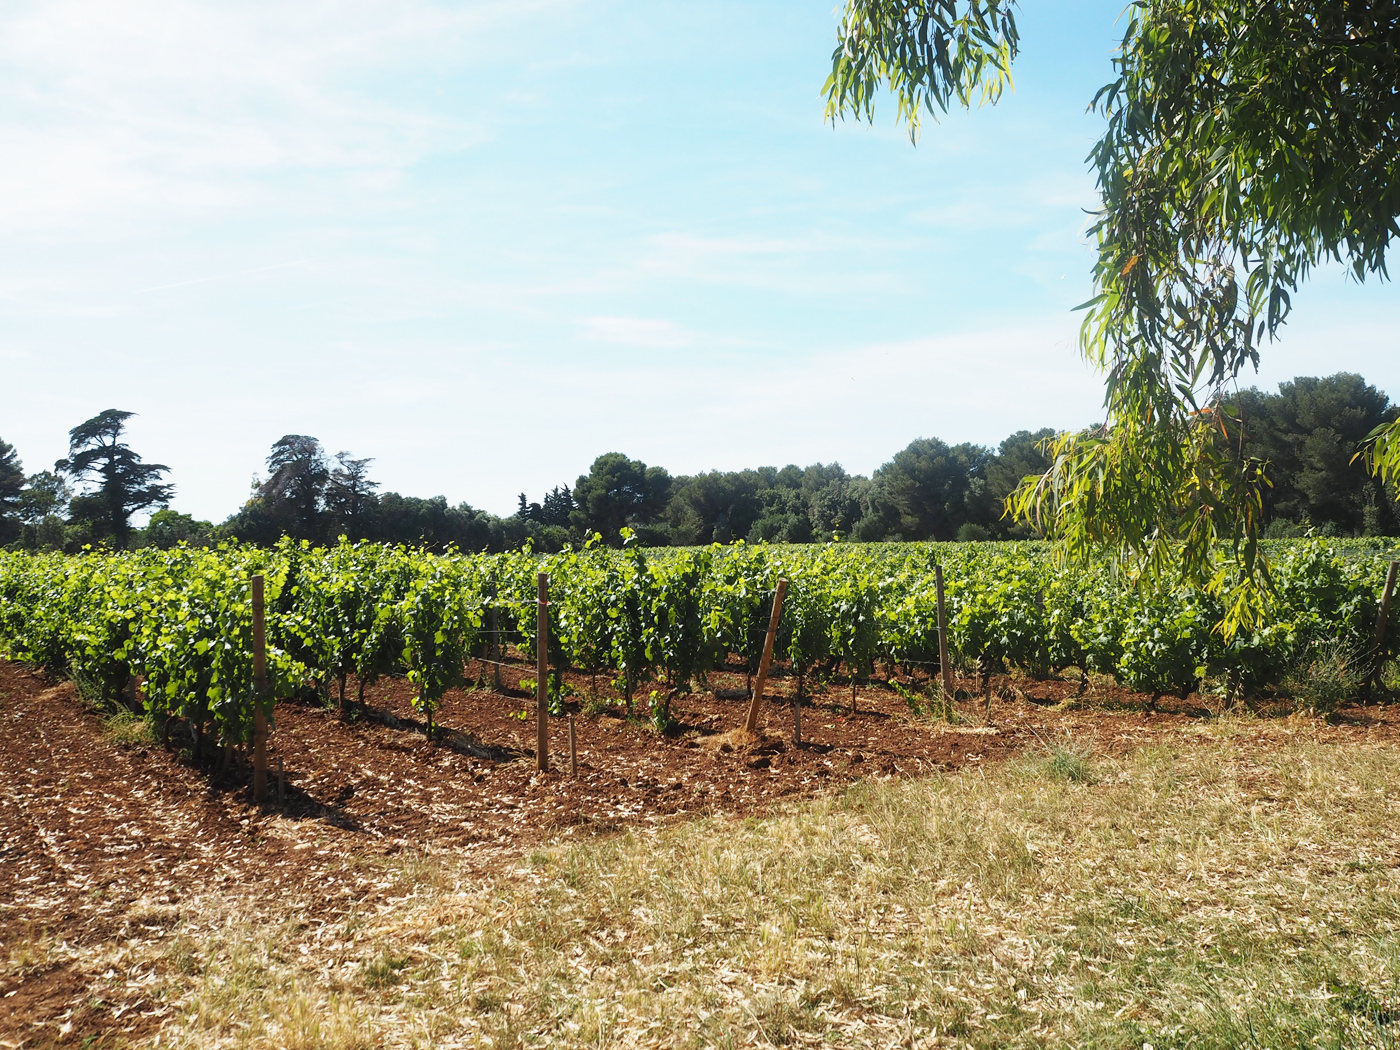 Île Saint-Honorat vineyards